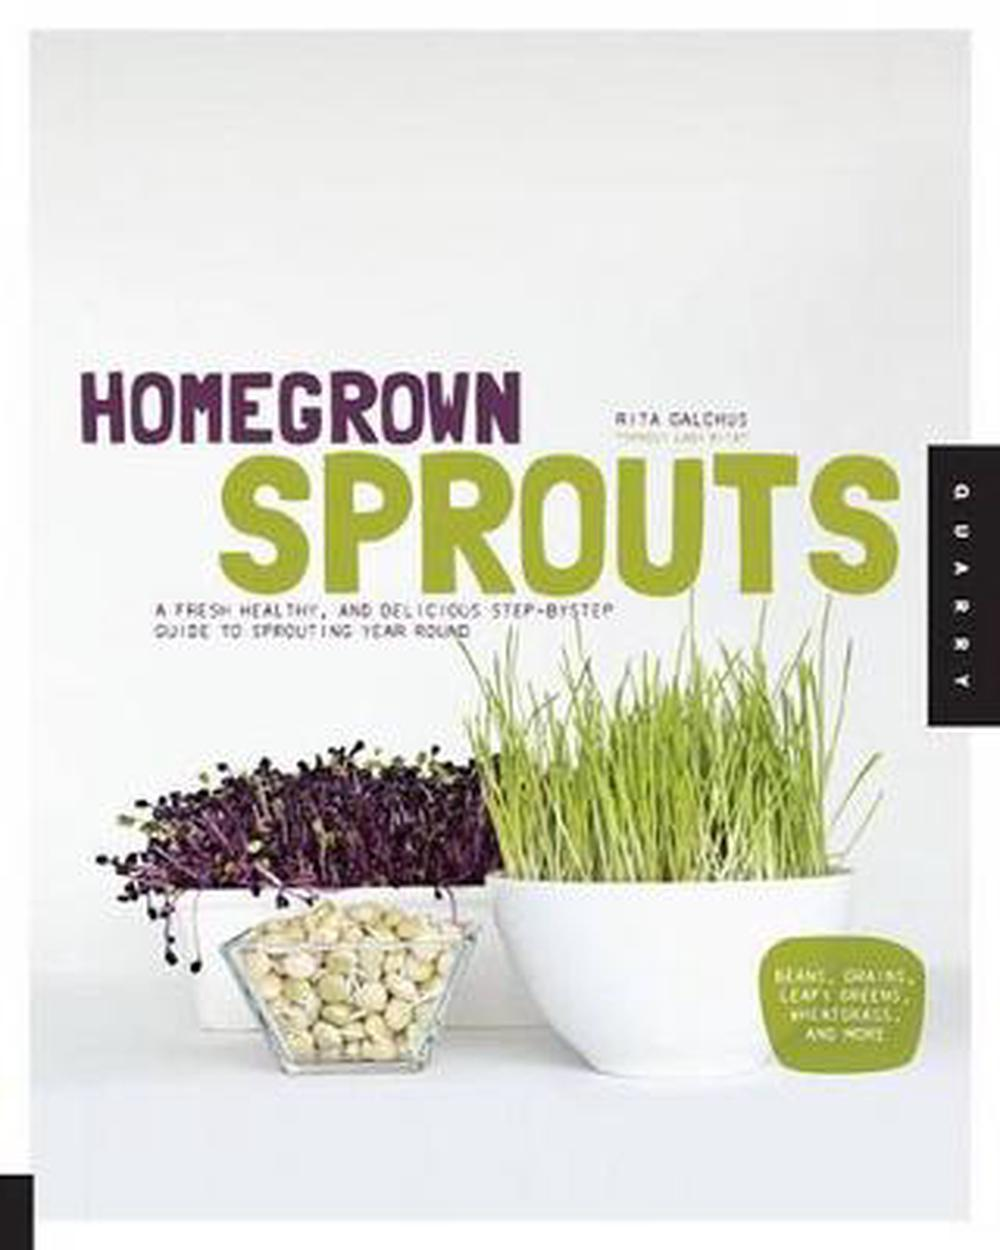 Homegrown Sprouts by Rita Galchus, ISBN: 9781592538706